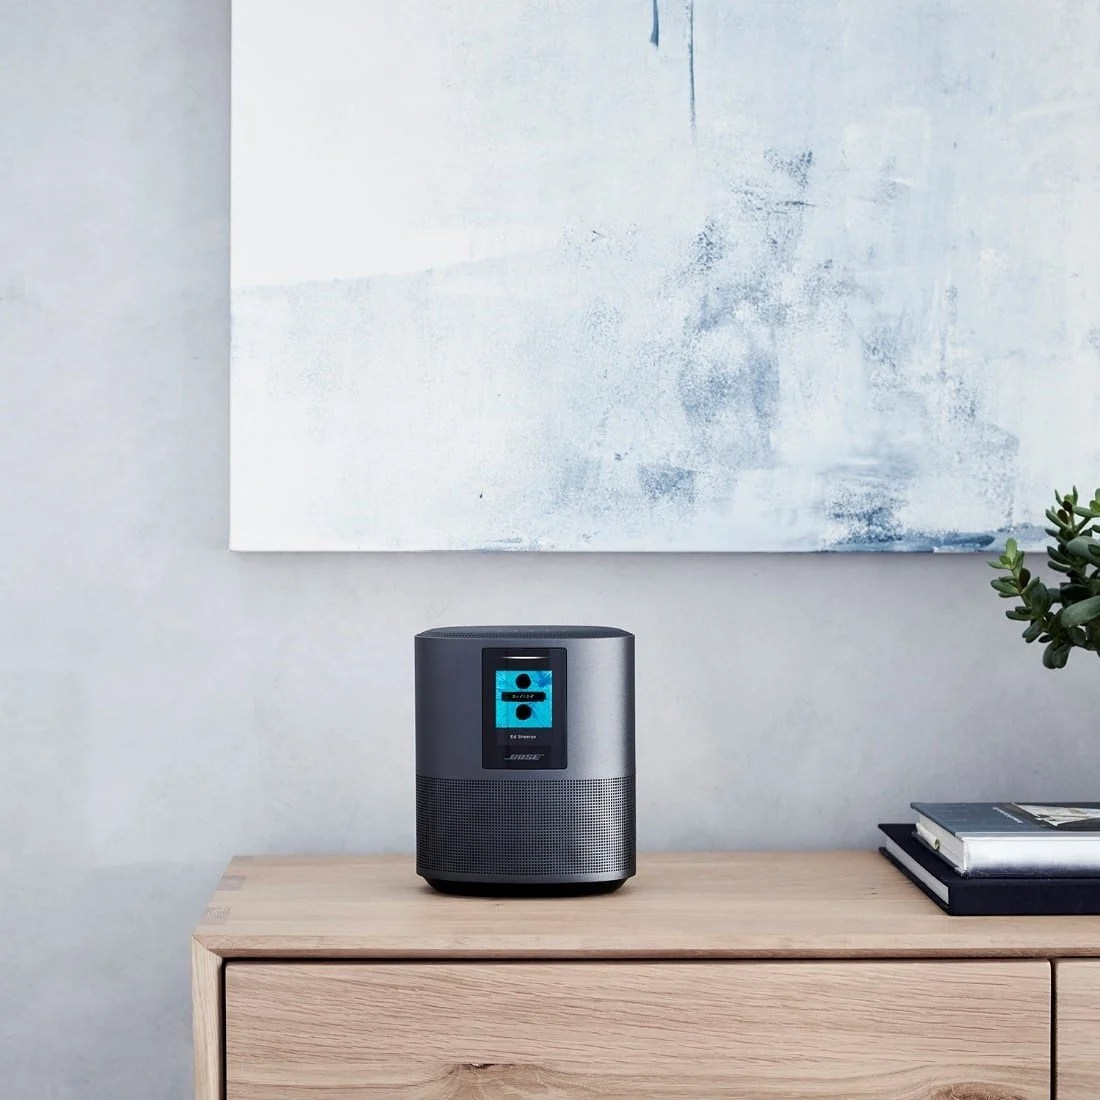 The Bose Home Speaker 500 delivers wall-to-wall stereo sound from a single speaker. Built-in voice control from Alexa puts songs, playlists, and more at the tip of your tongue.